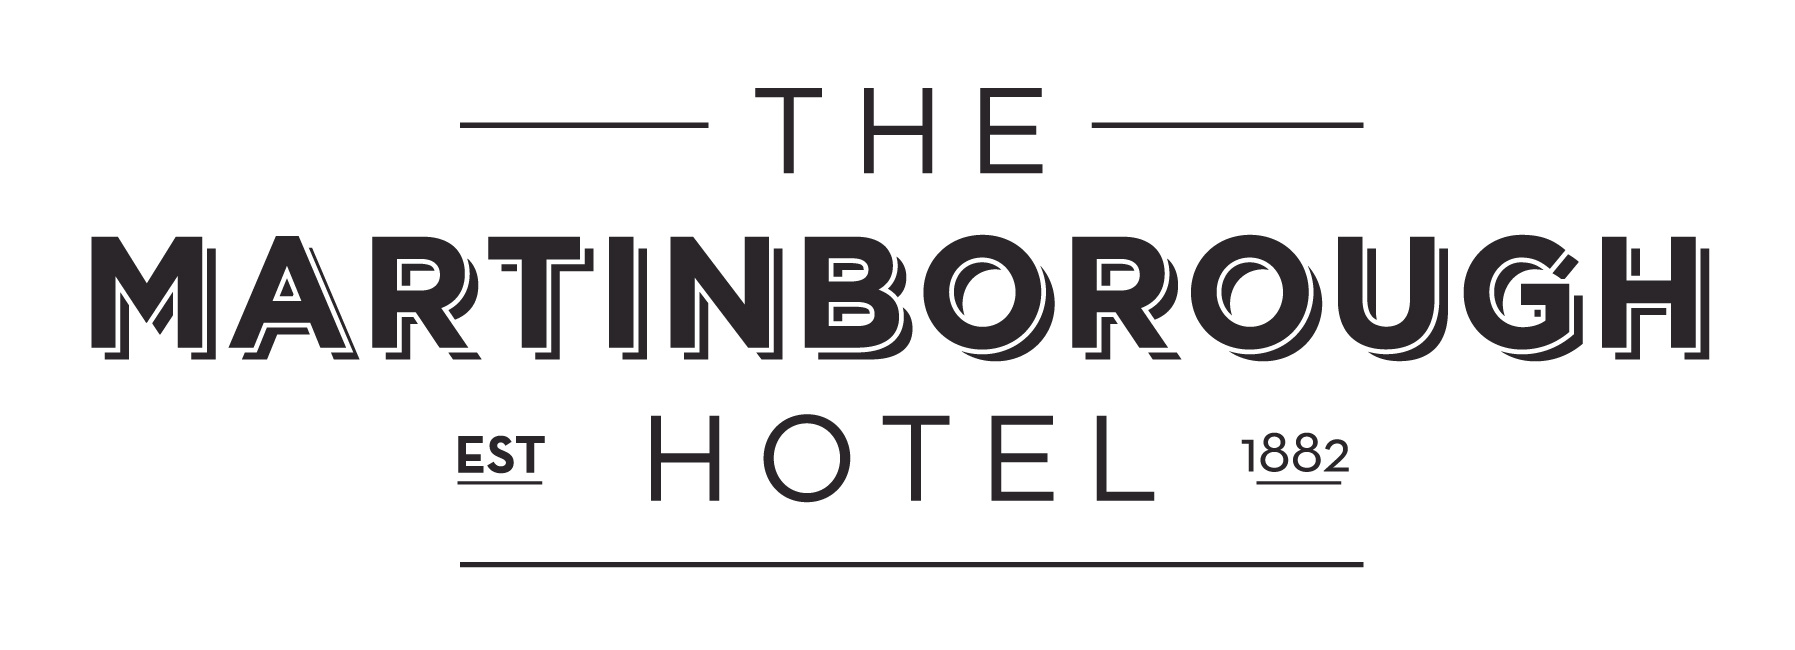 Martinborough Hotel logo